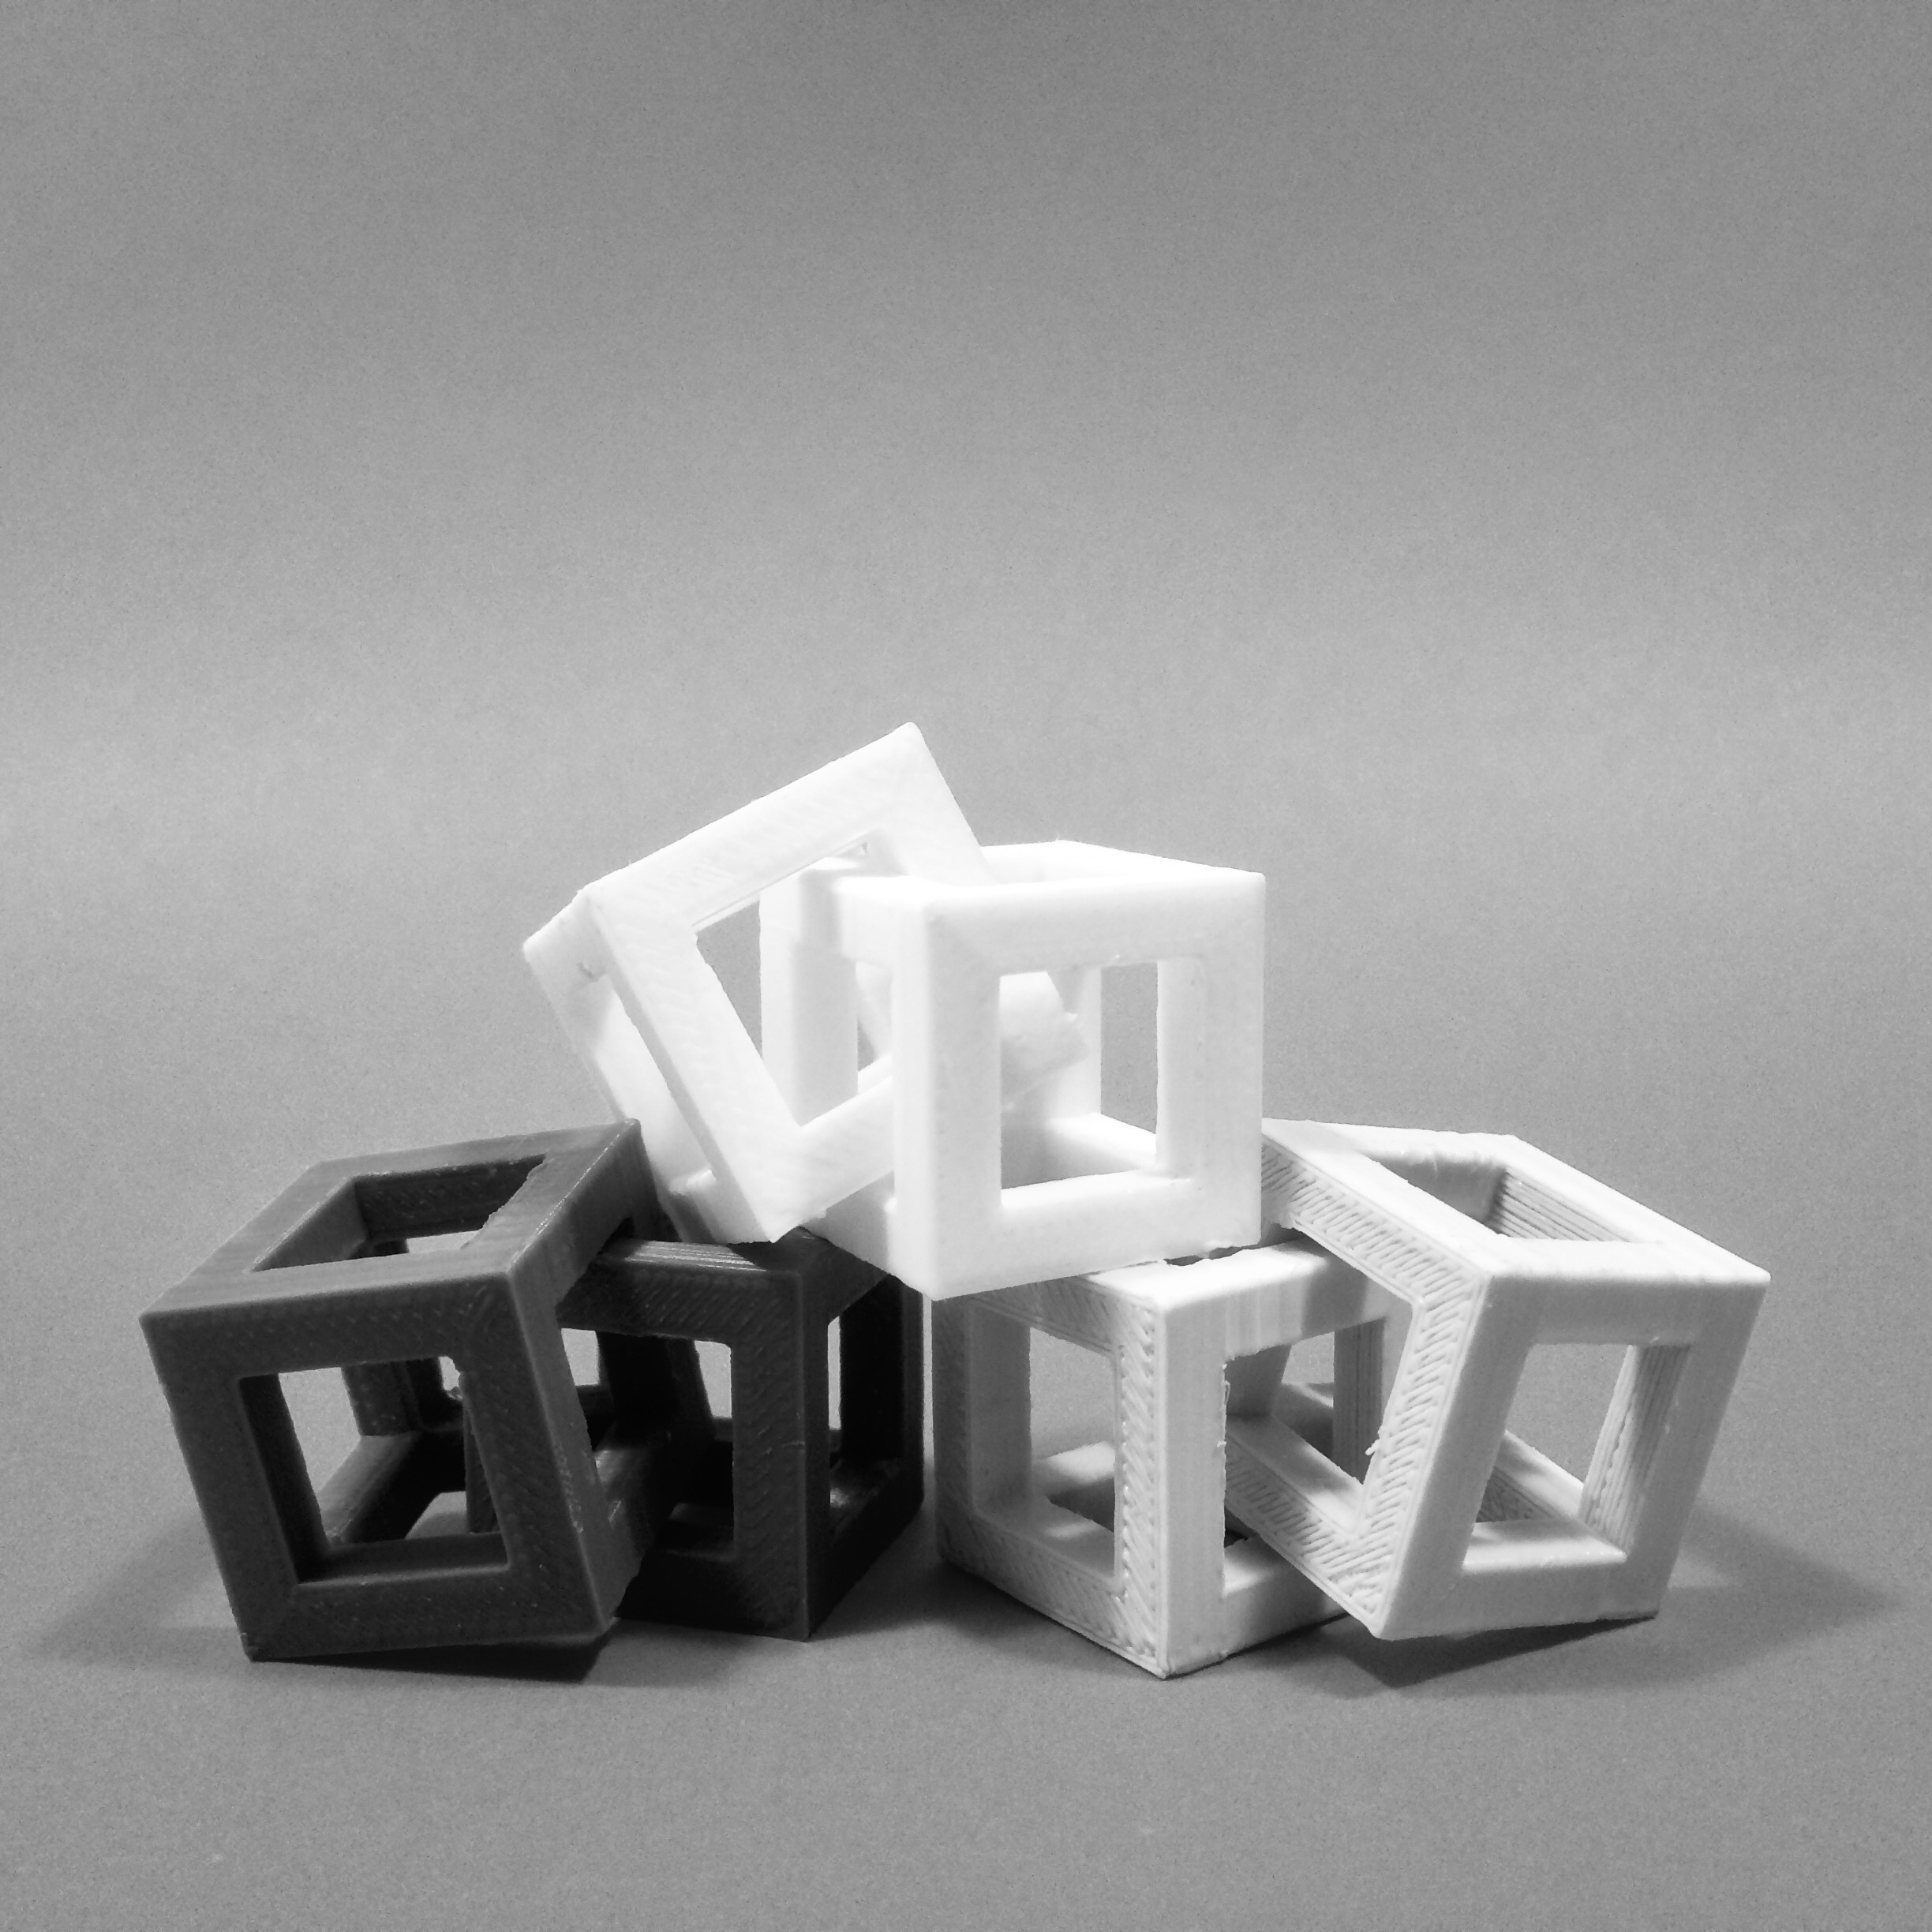 cube-compilation_cults3d_01.jpg Download free STL file CUBE COMPILATION • 3D print template, PRACOWNIA71